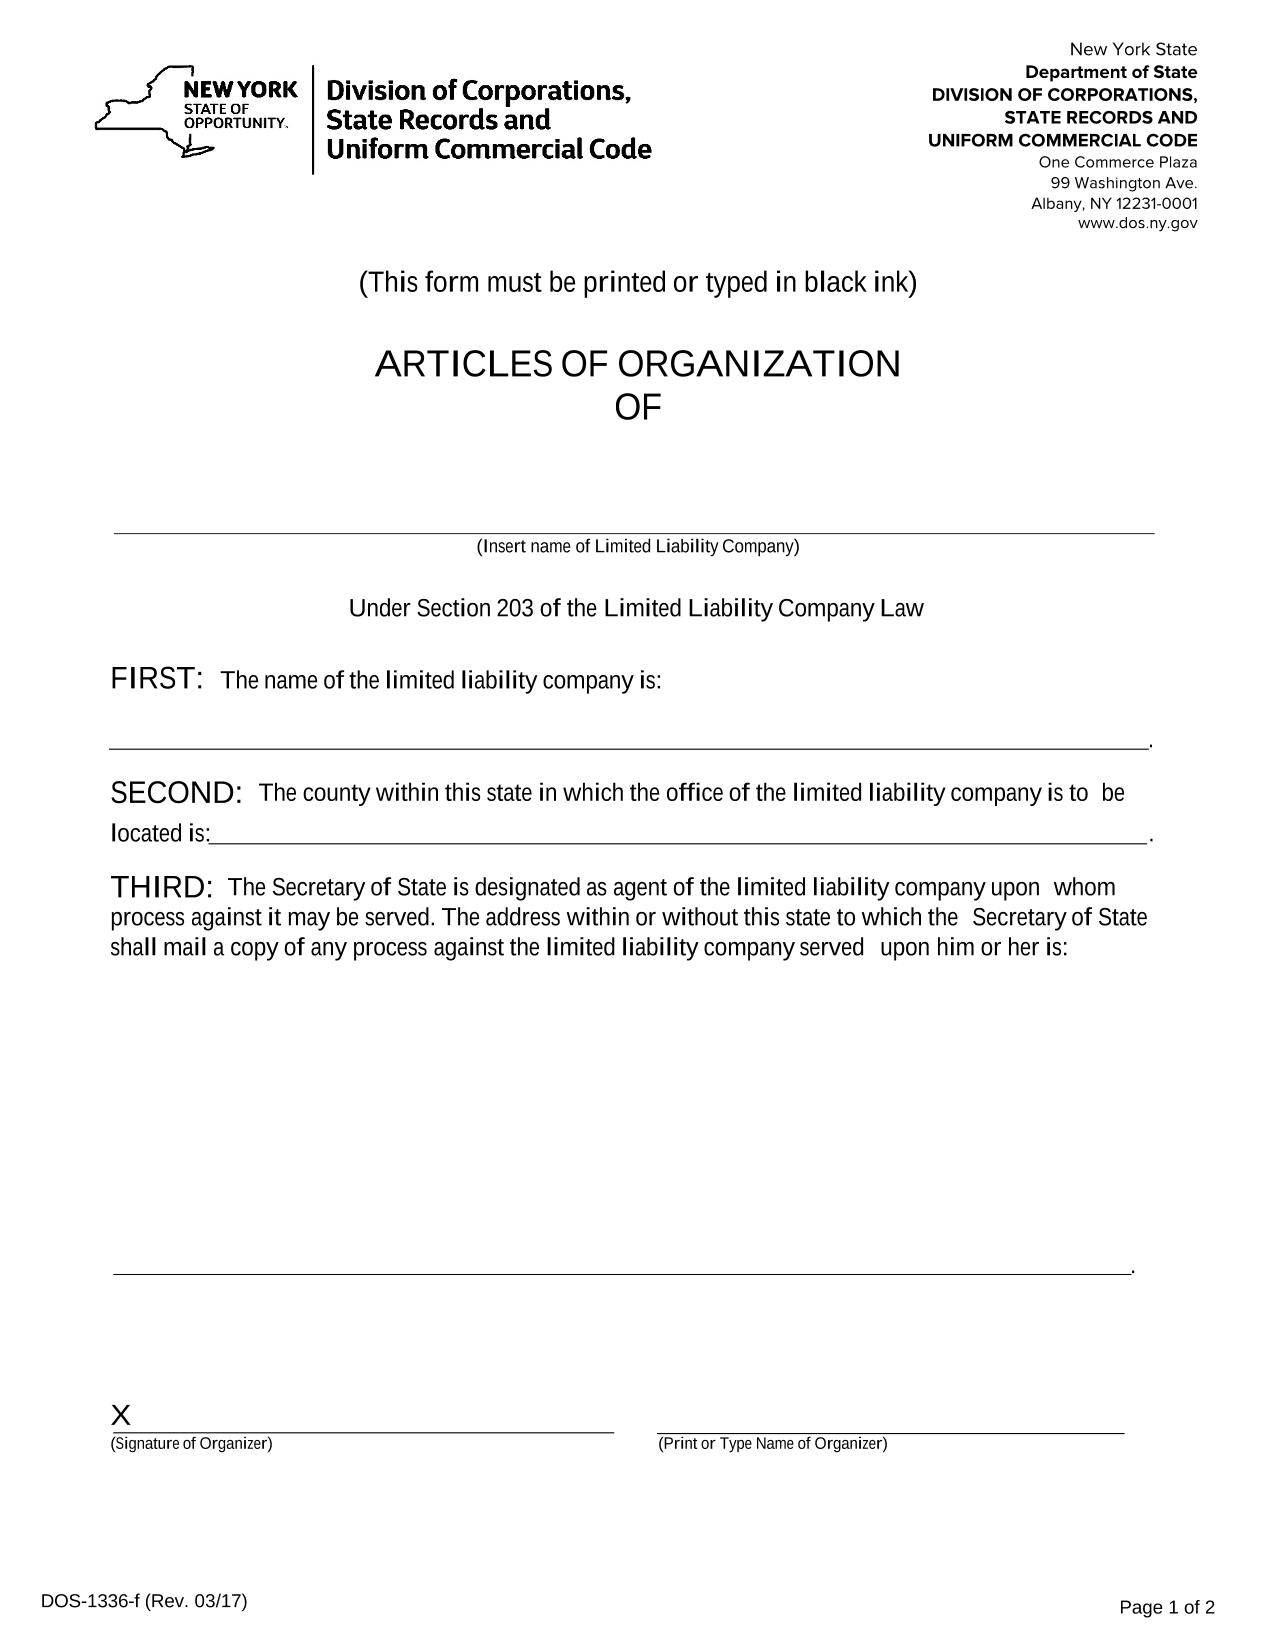 Articles Of Organization Llc Ny Template